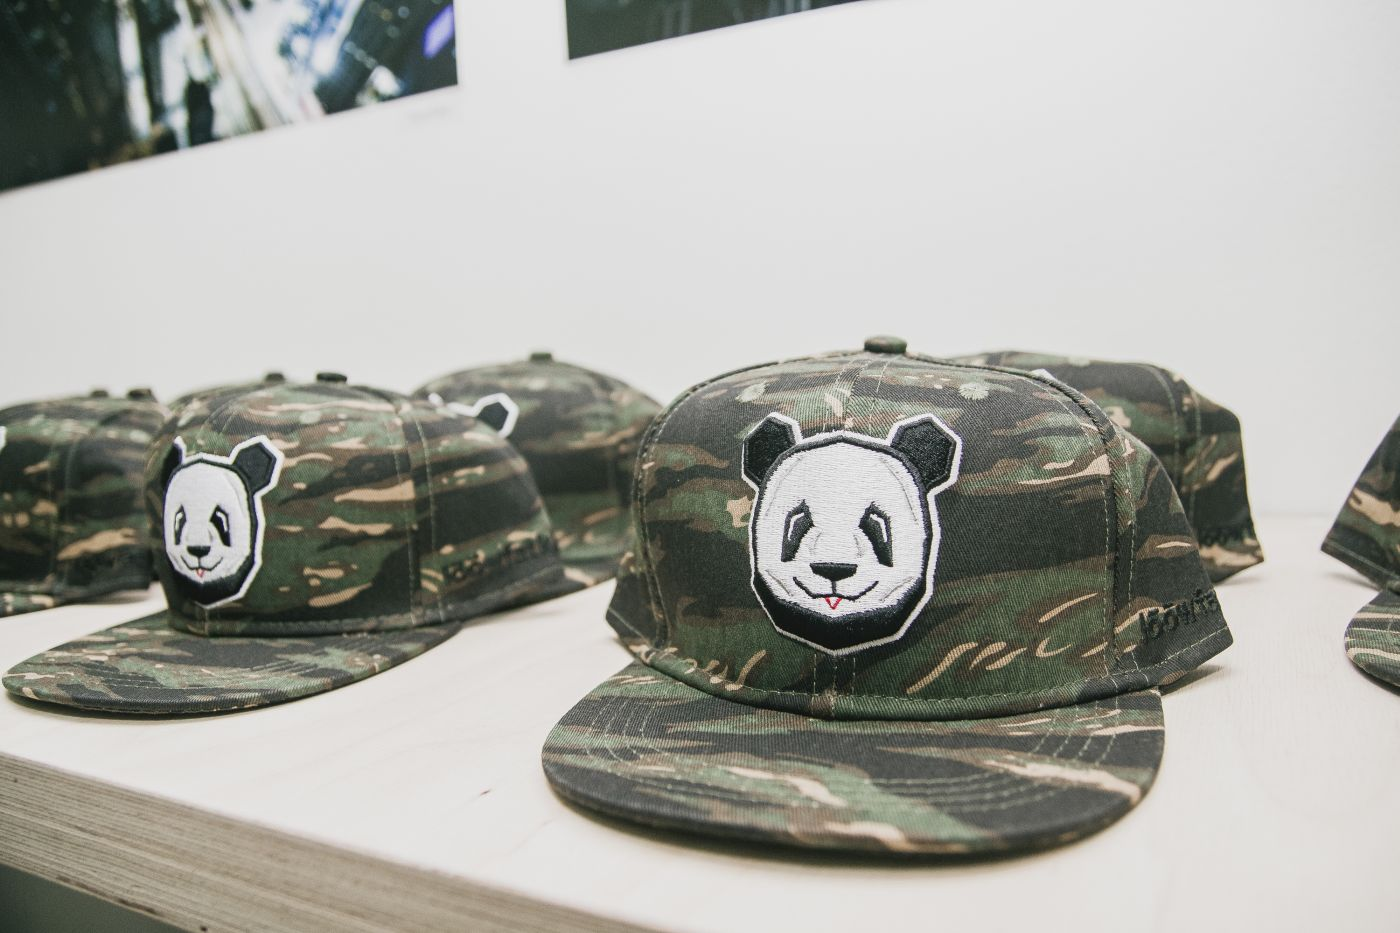 LoowFAT Kids x Queens pop-up shop 🐼 | Fotoreport